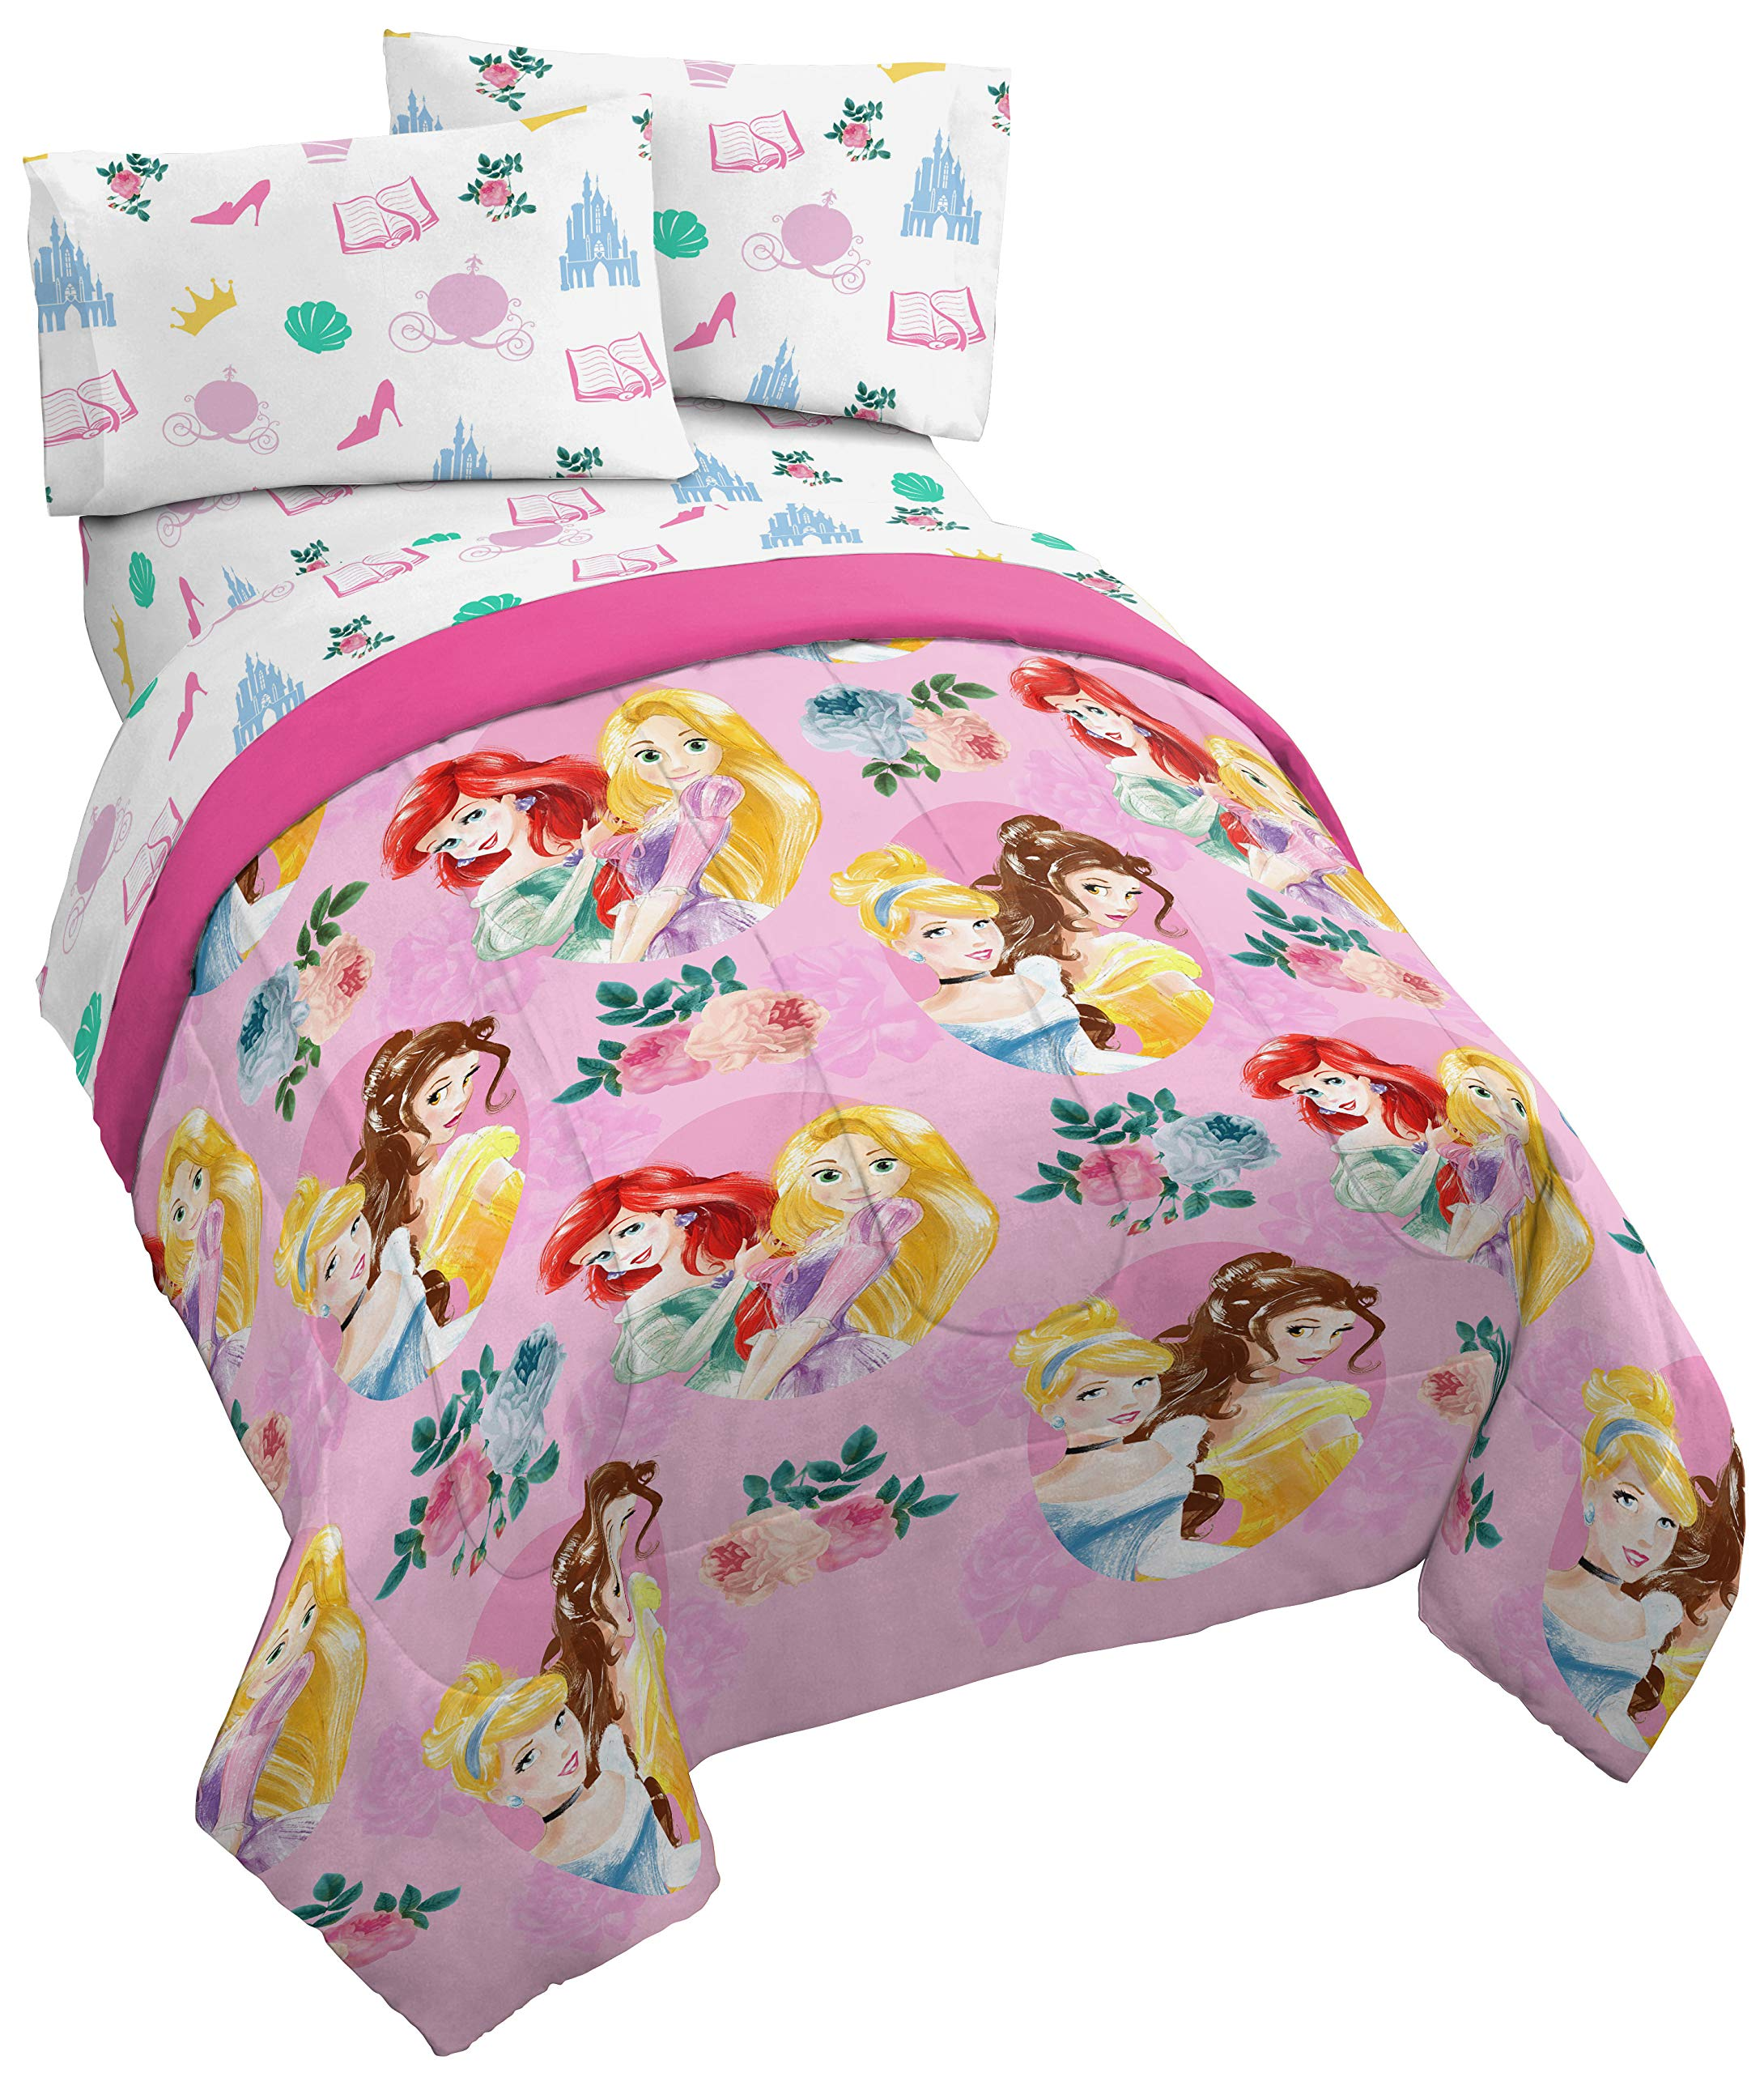 Jay Franco Disney Princess Sassy 4 Piece Twin Bed Set - Includes Reversible Comforter & Sheet Set - Super Soft Fade Resistant Polyester - (Official Disney Product) by Jay Franco